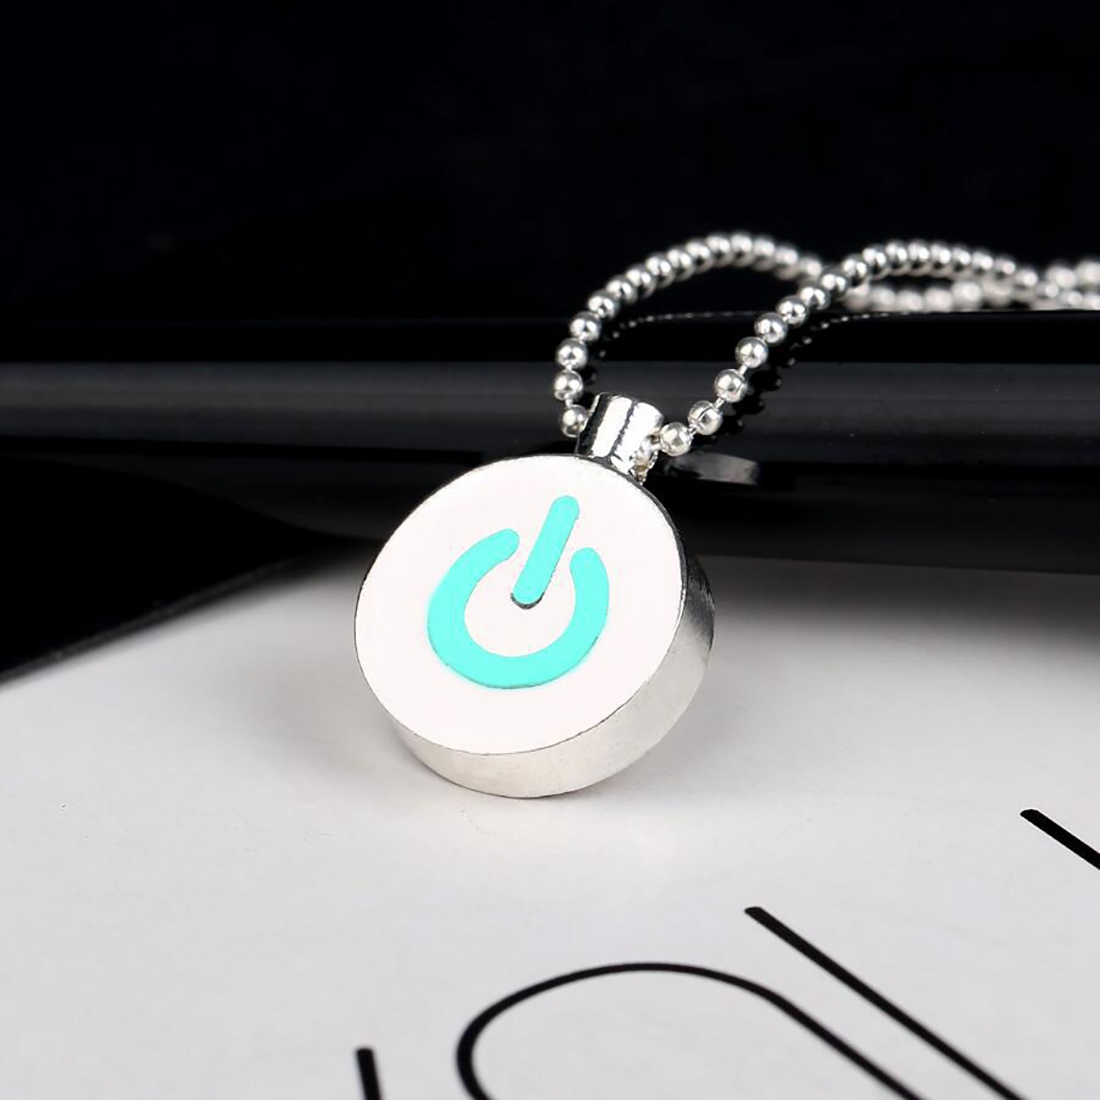 Creative Fluorescent Power Pendant Necklace Luminous Necklace Gift For Men And Women Jewelry Glowing In The Dark Necklace